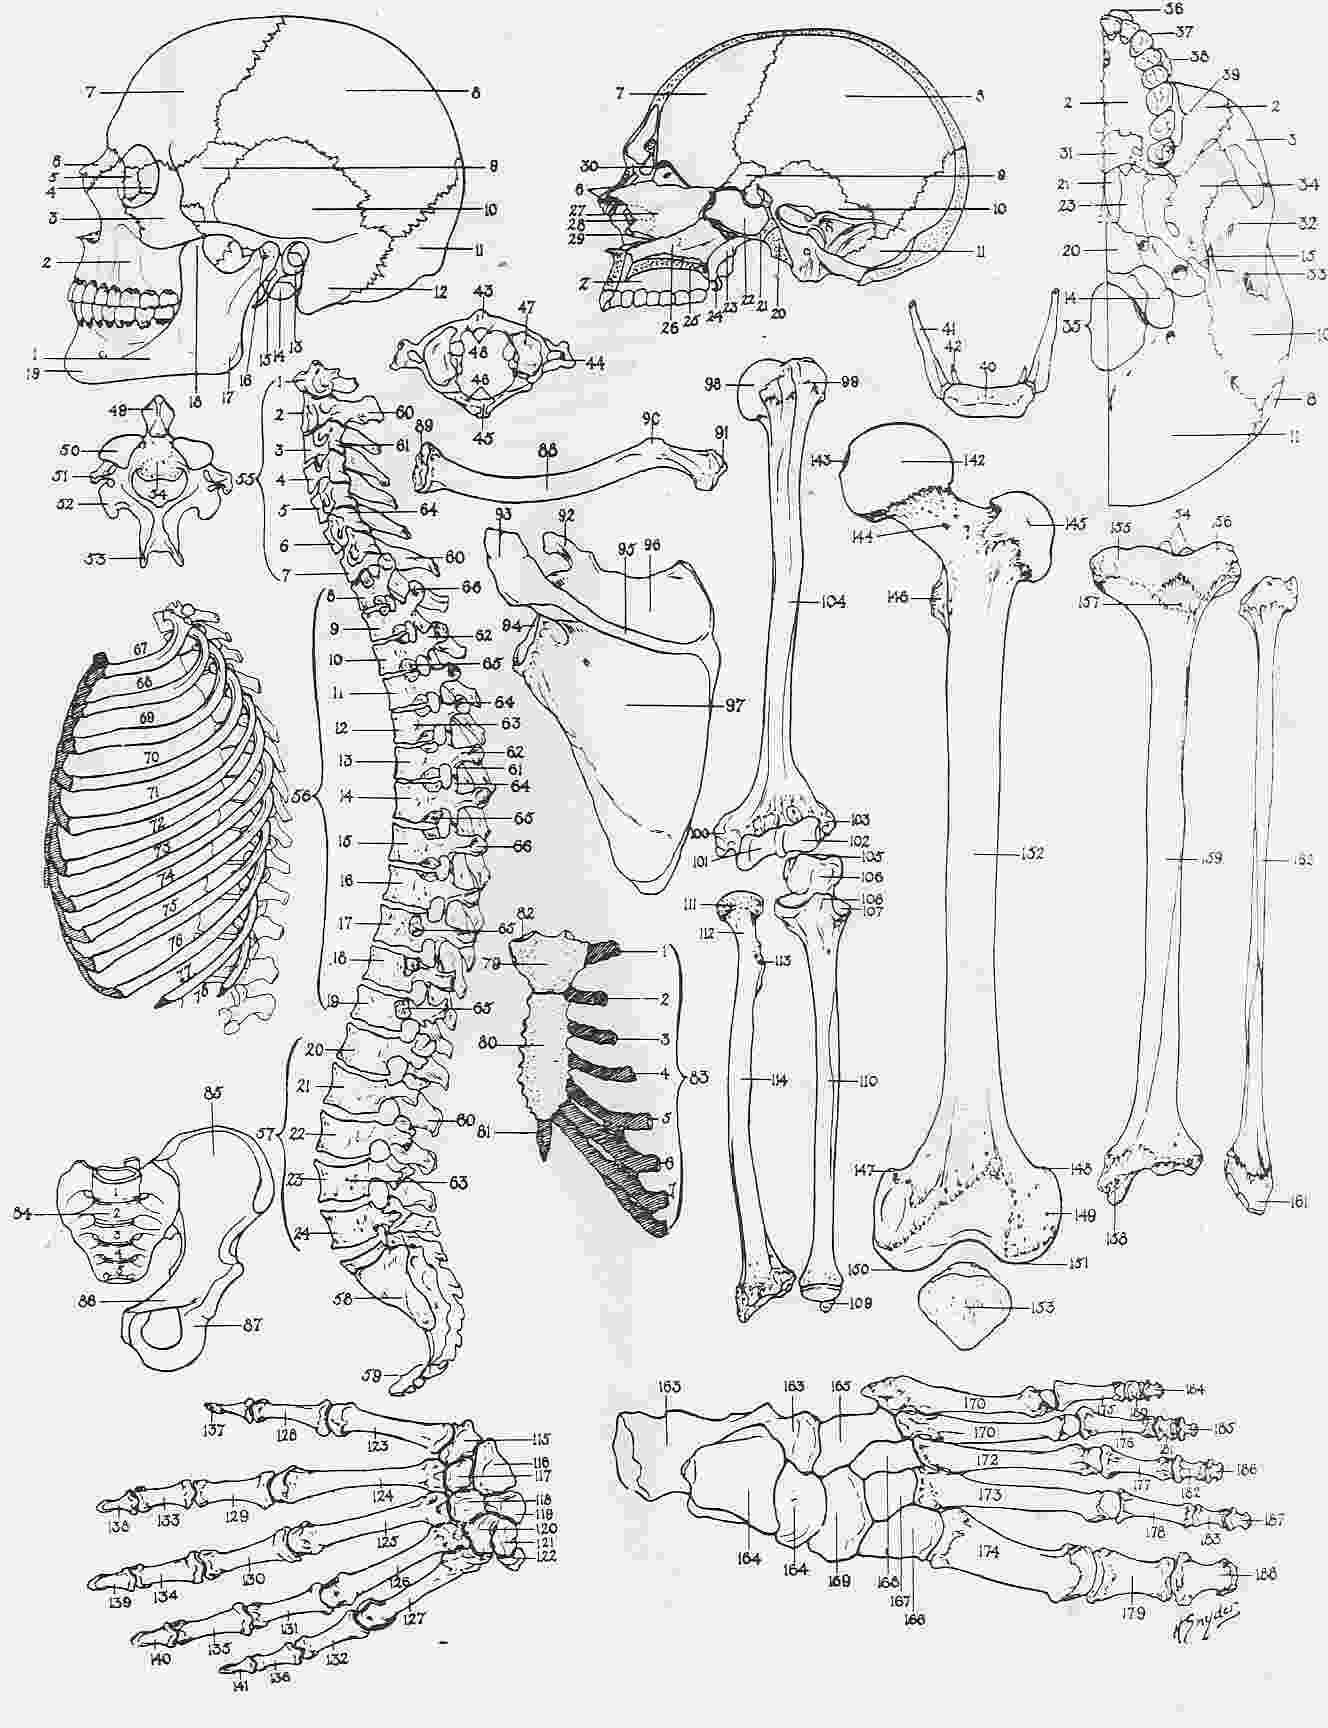 anatomy coloring book free free anatomy and physiology coloring pages coloring home book anatomy coloring free